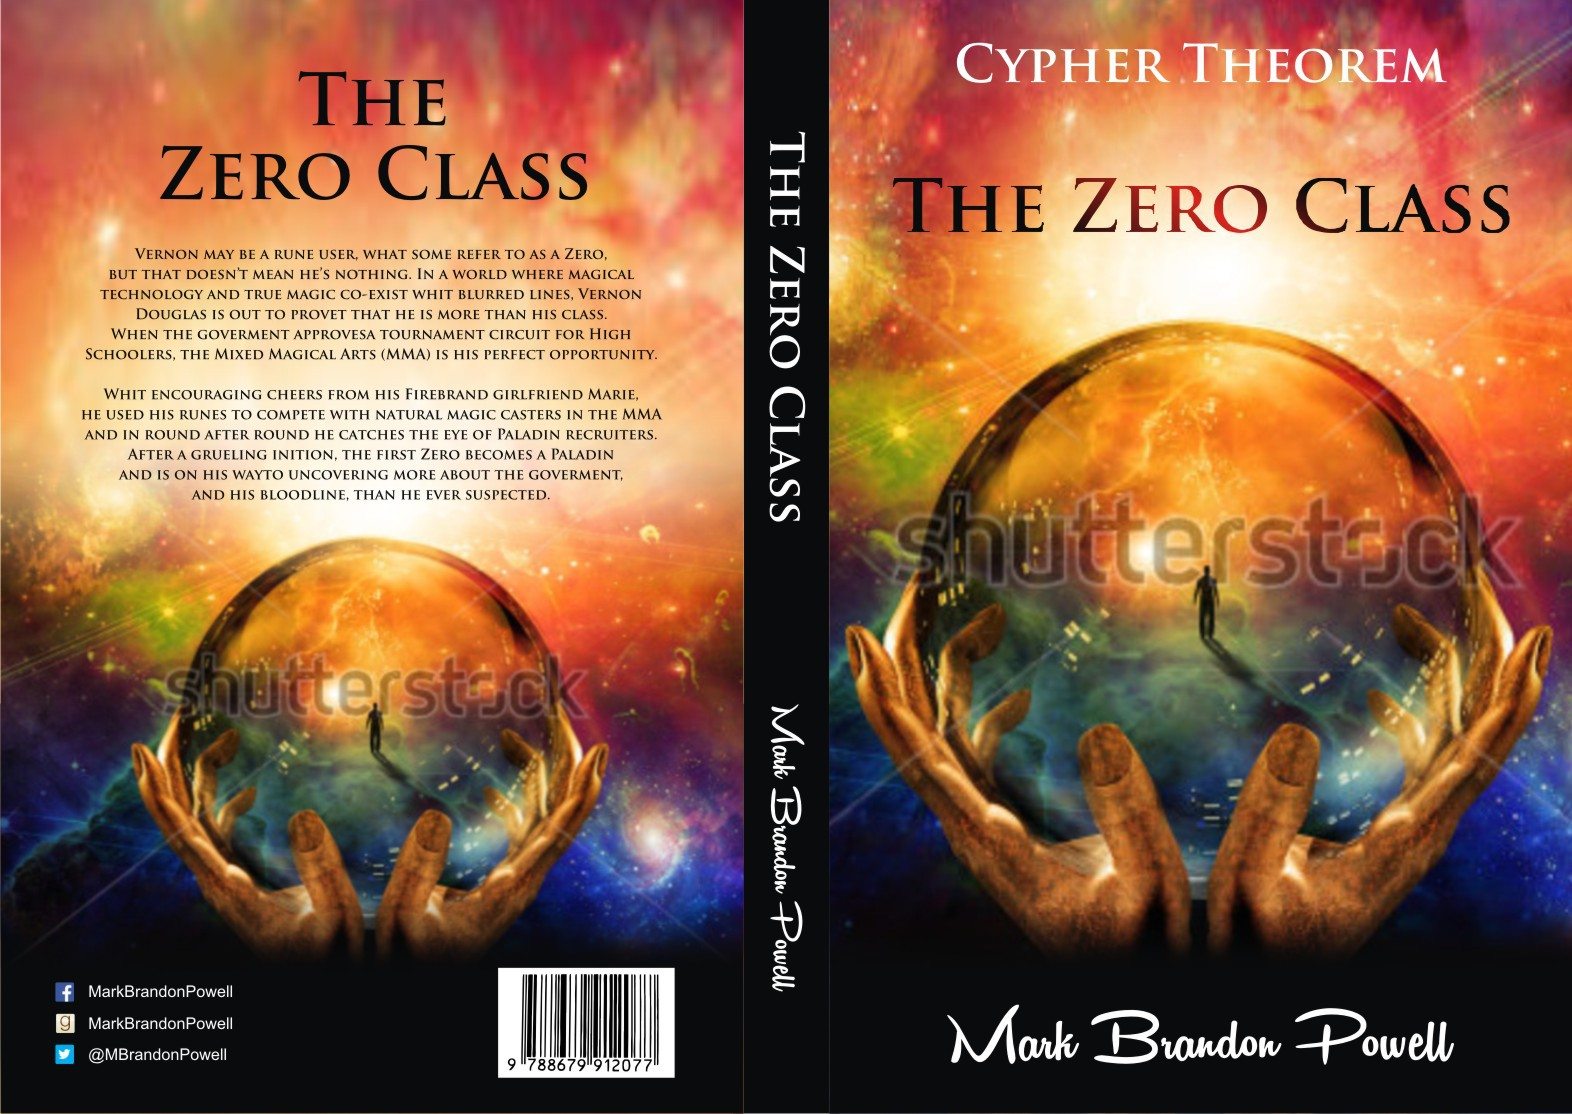 The Zero Class (Cypher Theorem vol 0) cover for Guardian Bear Publishing